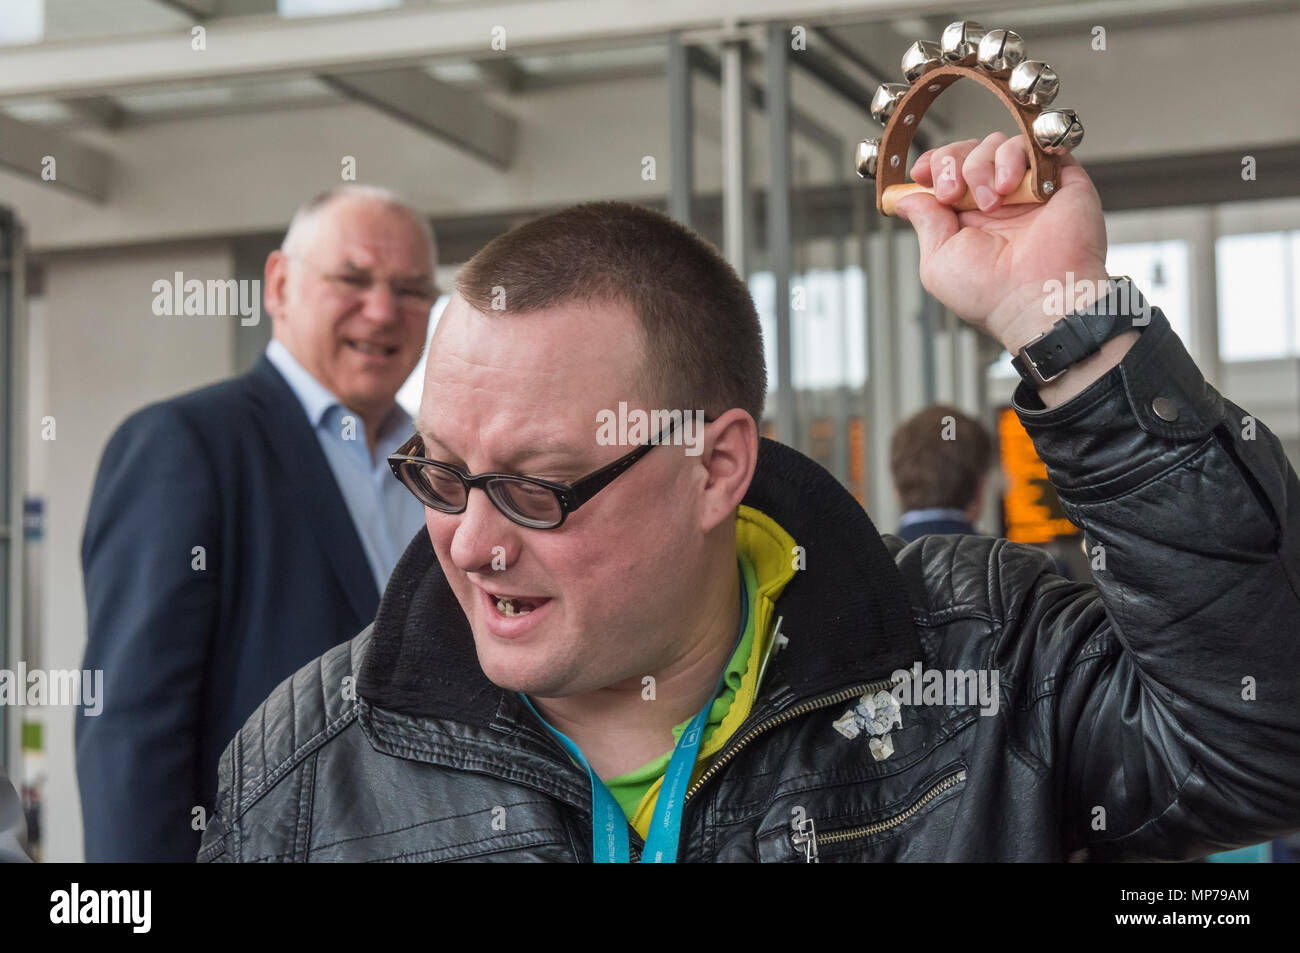 London, UK. 21st May 2018. A man waves some bells to applaud a speaker at the 'People's Picket' by disabled rail passengers from Disabled People Against Cuts along with the Association of British Commuters and RMT members outside London Bridge station. GTR uses a staff training guide in which they are dehumanised as 'PRM's  and staff are instructed to leave wheelchair users on the platform, even when they have arranged and pre-booked a journey. Credit: Peter Marshall/Alamy Live News - Stock Image